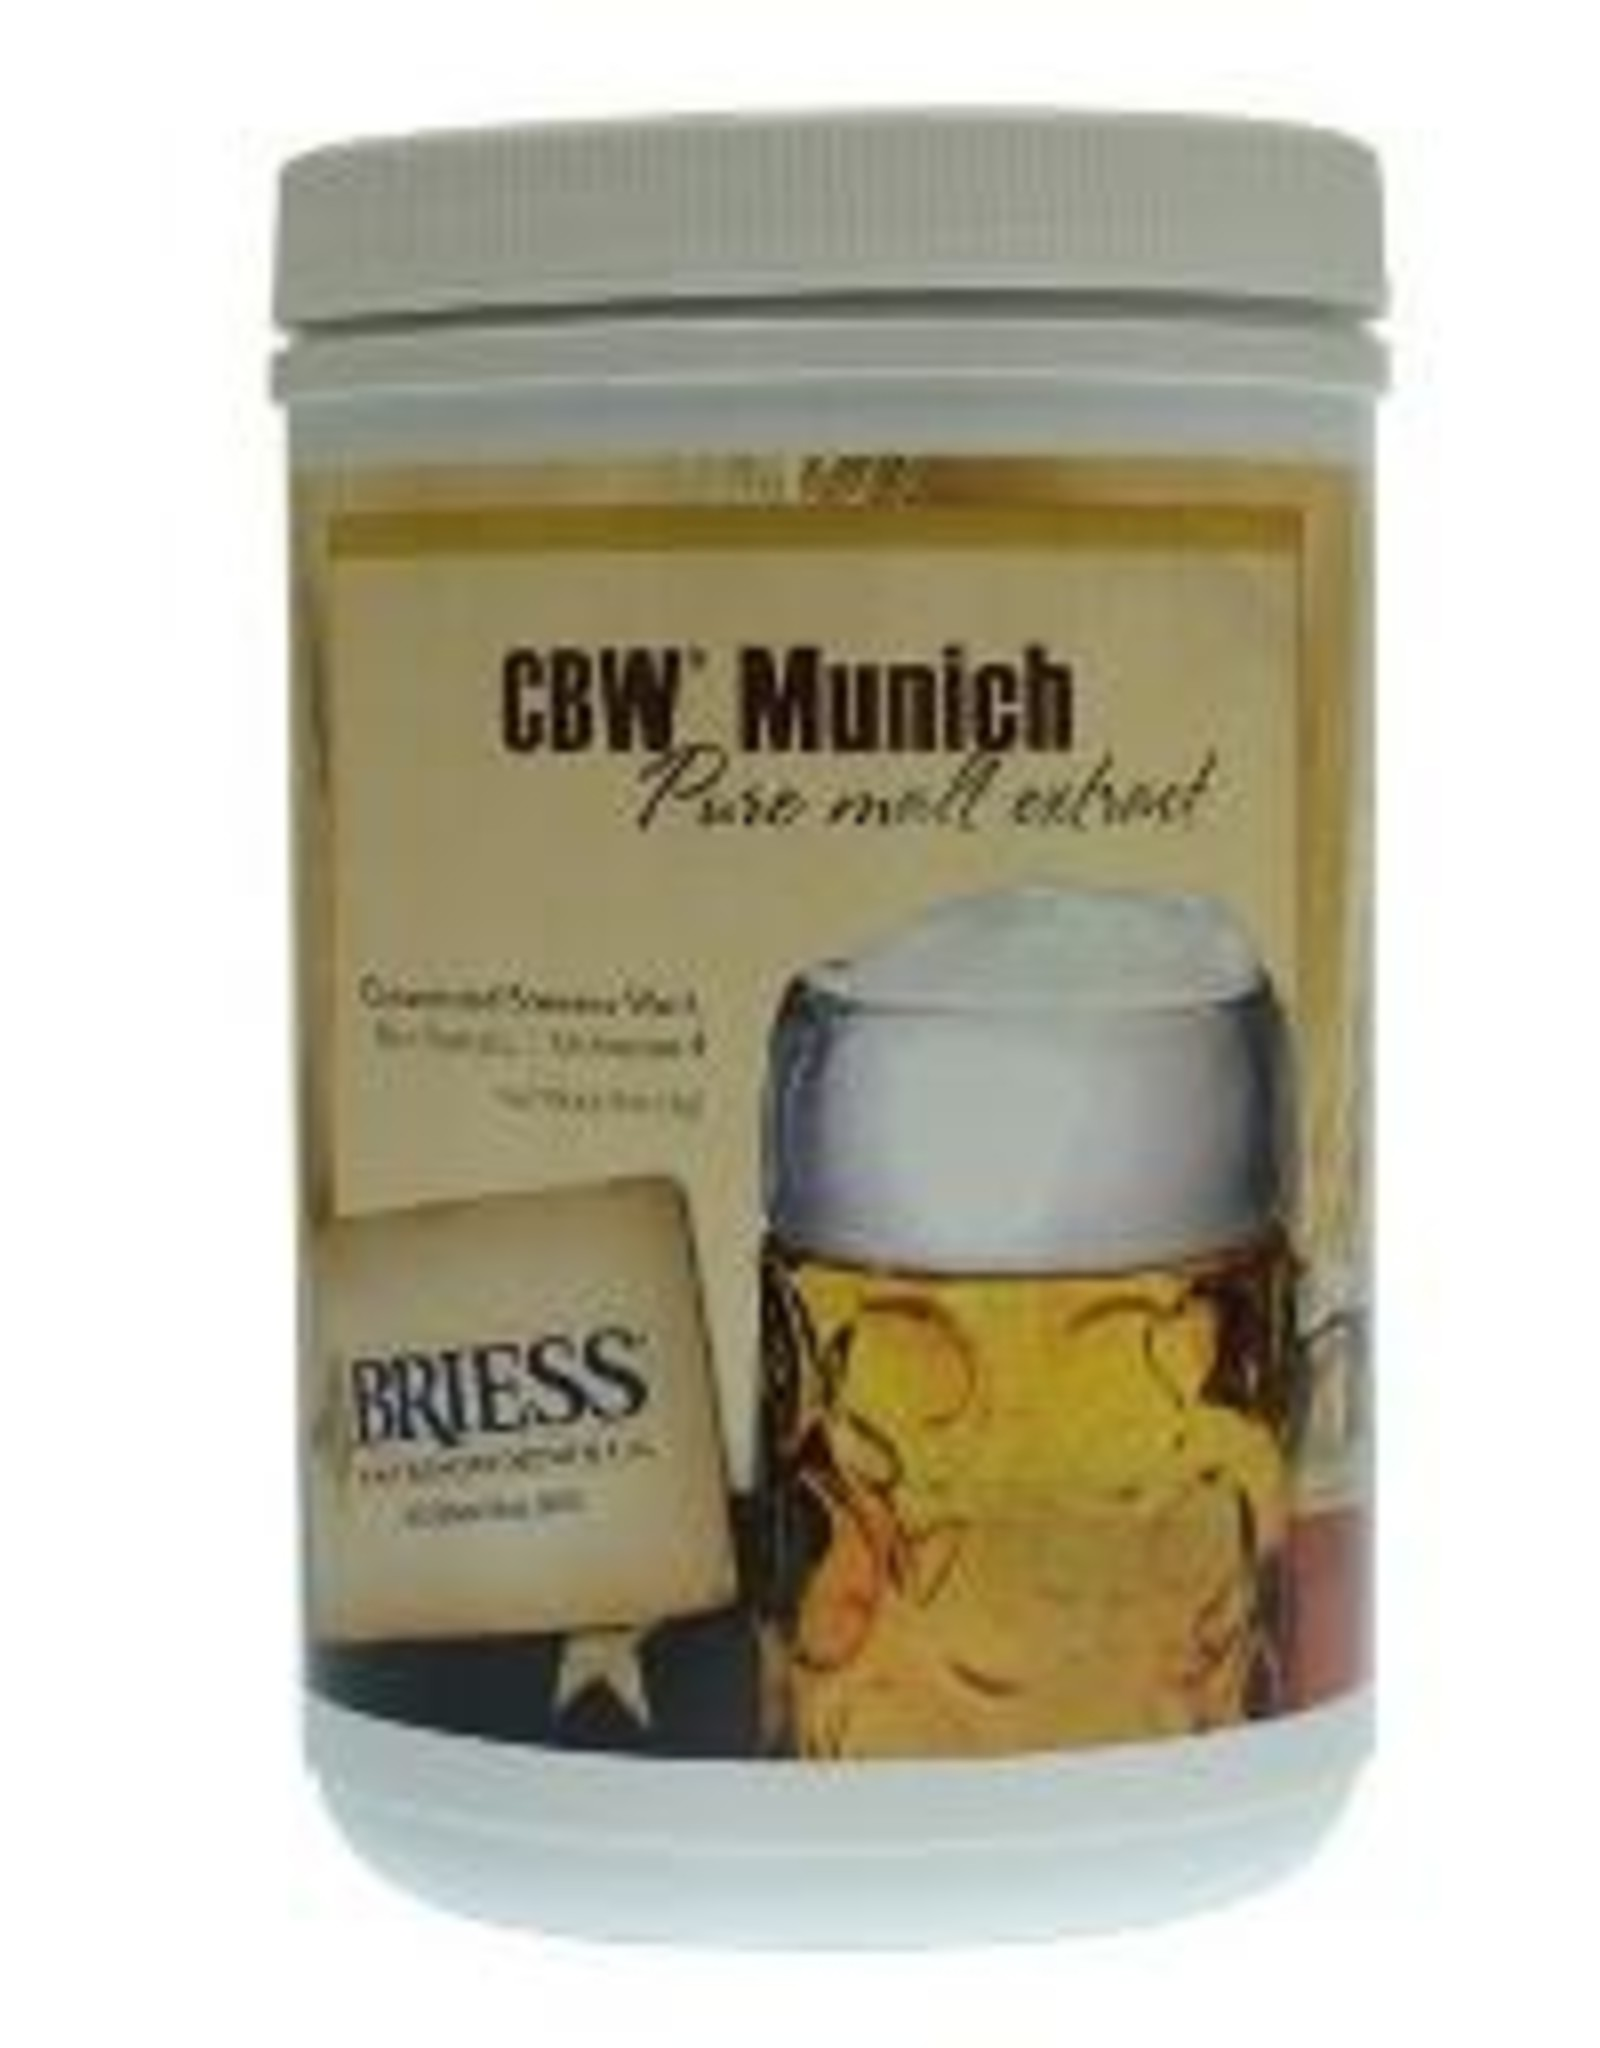 """BRIESS BRIESS MALT EXTRACT (UNITED STATES) - Concentrated Brewers Wort (CBW) that has been """"gently heated"""" to pasteurize the malt. Packed in 3.3 lb. plastic canisters, 12 per case. Shelf life is good, but prolonged storage is not recommended. Priced per canister"""